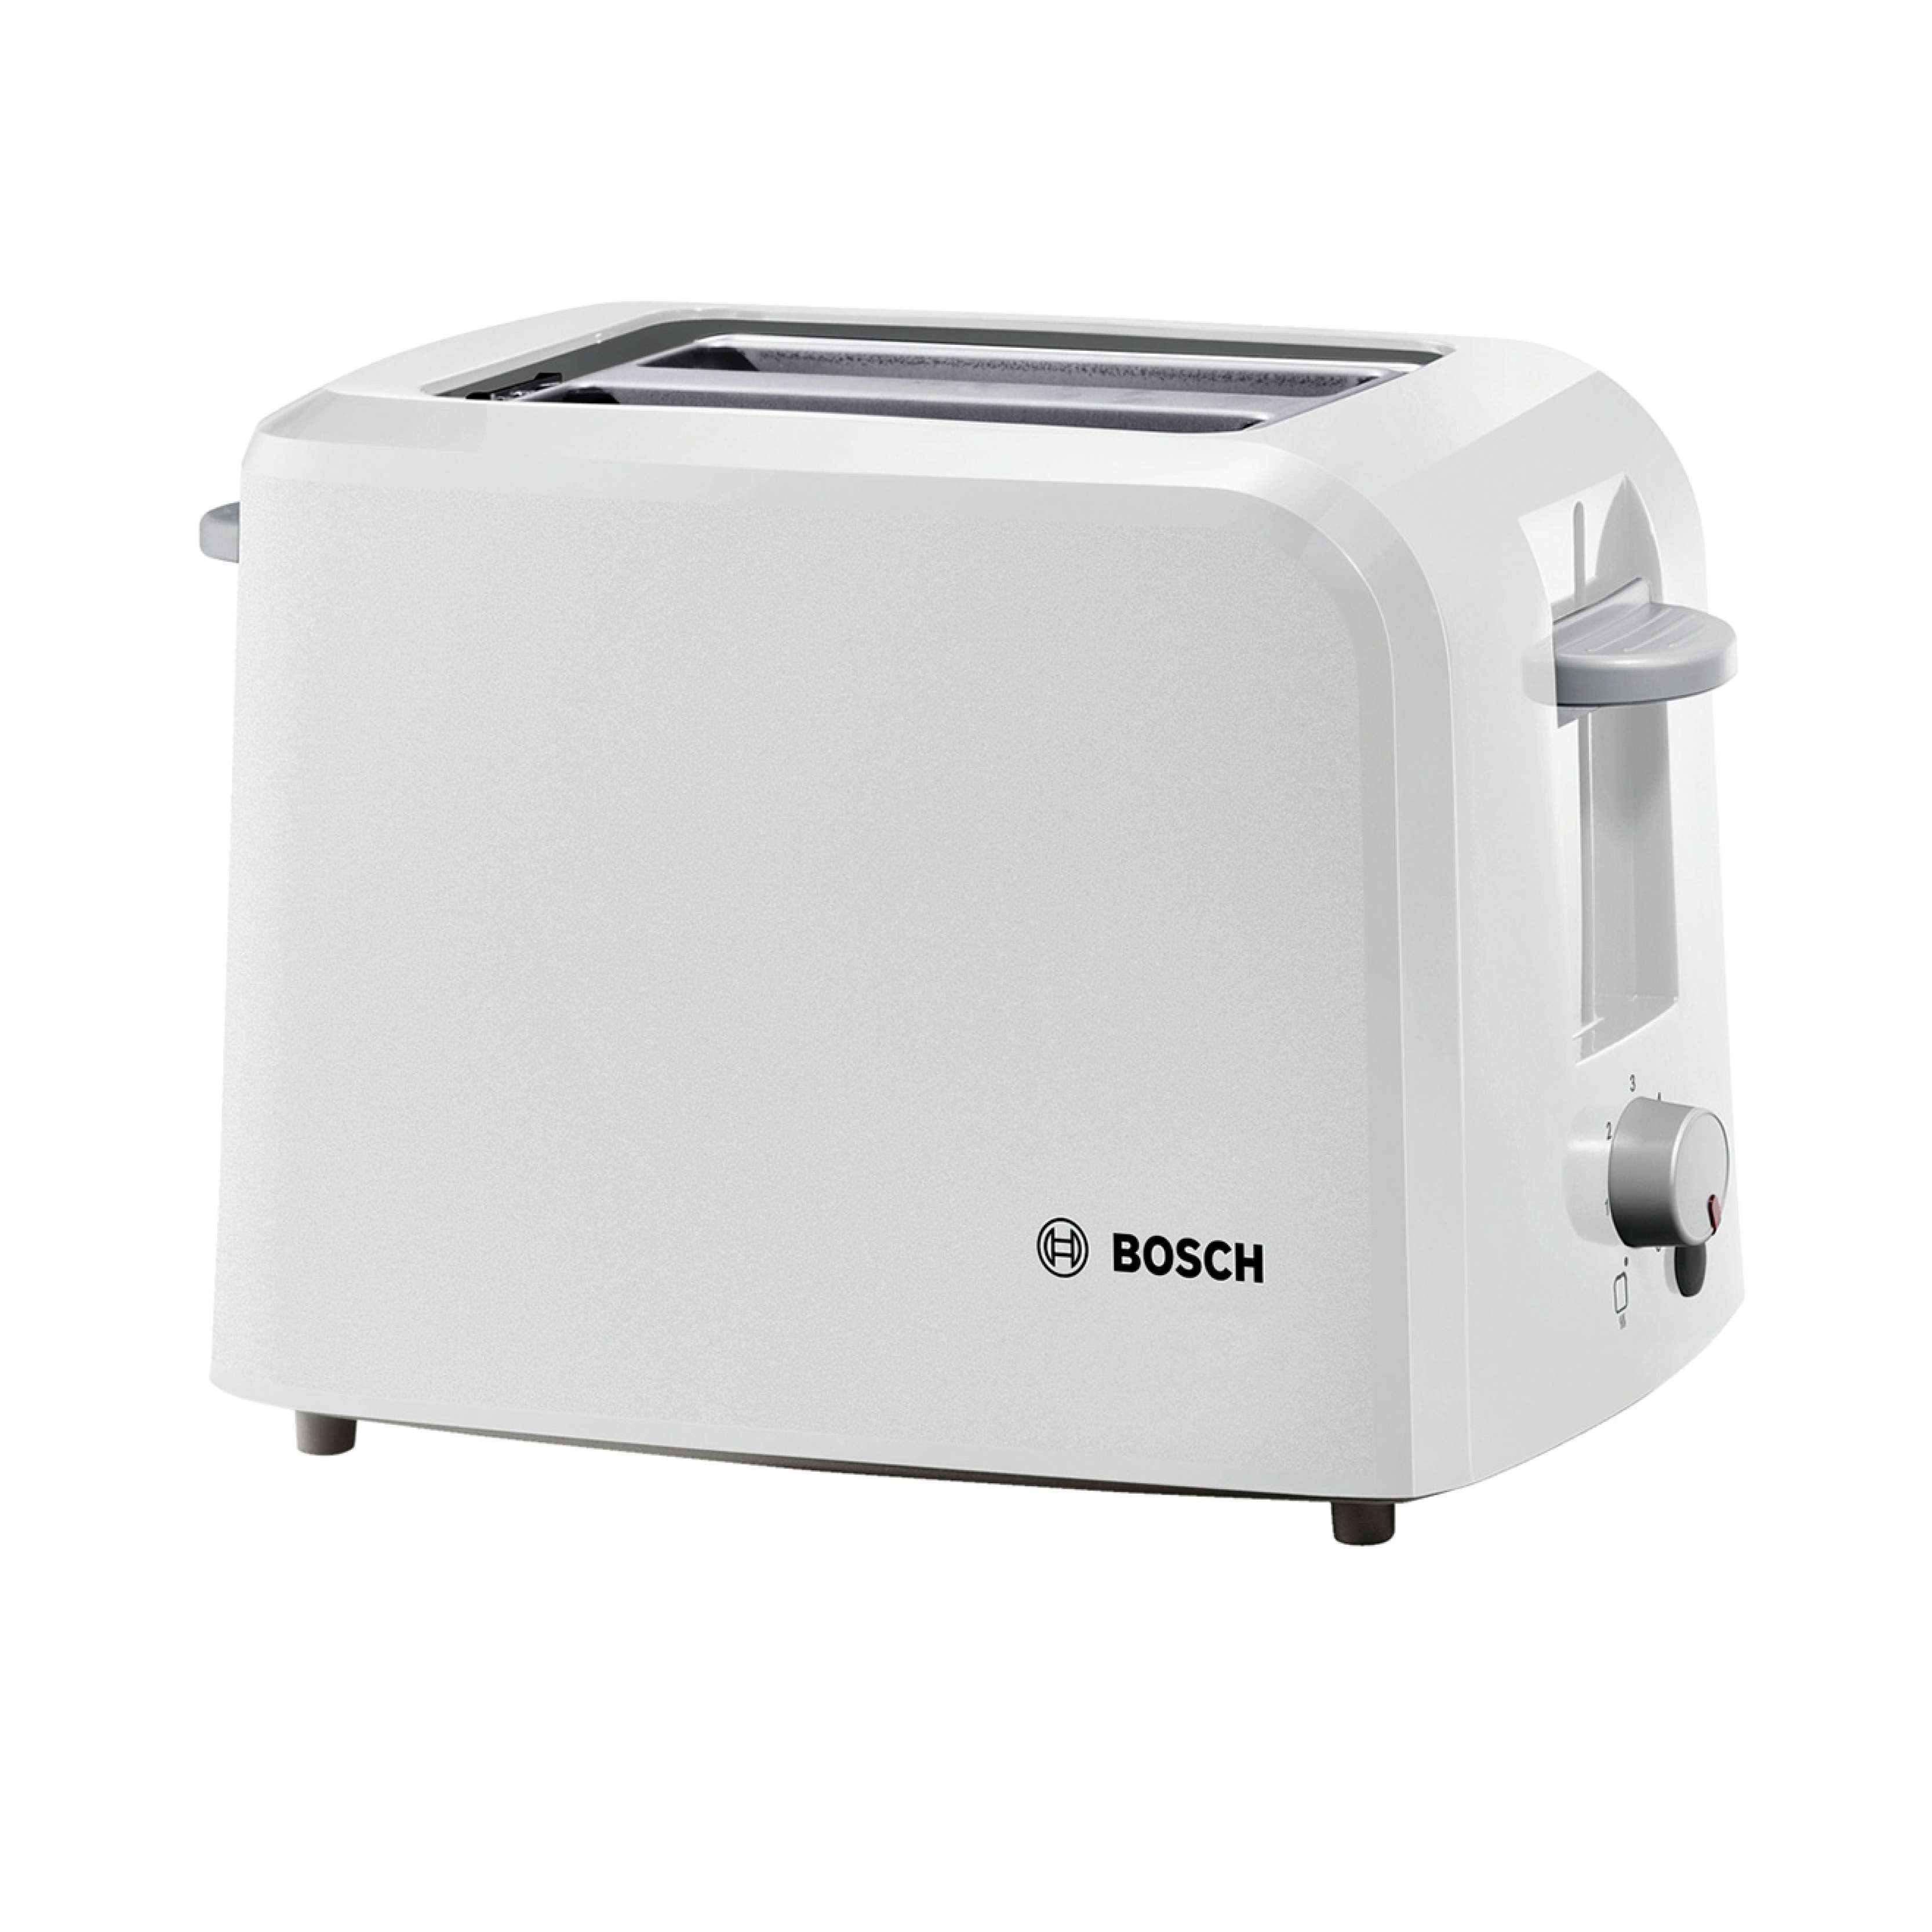 2 Slice Electric Toaster - 240v